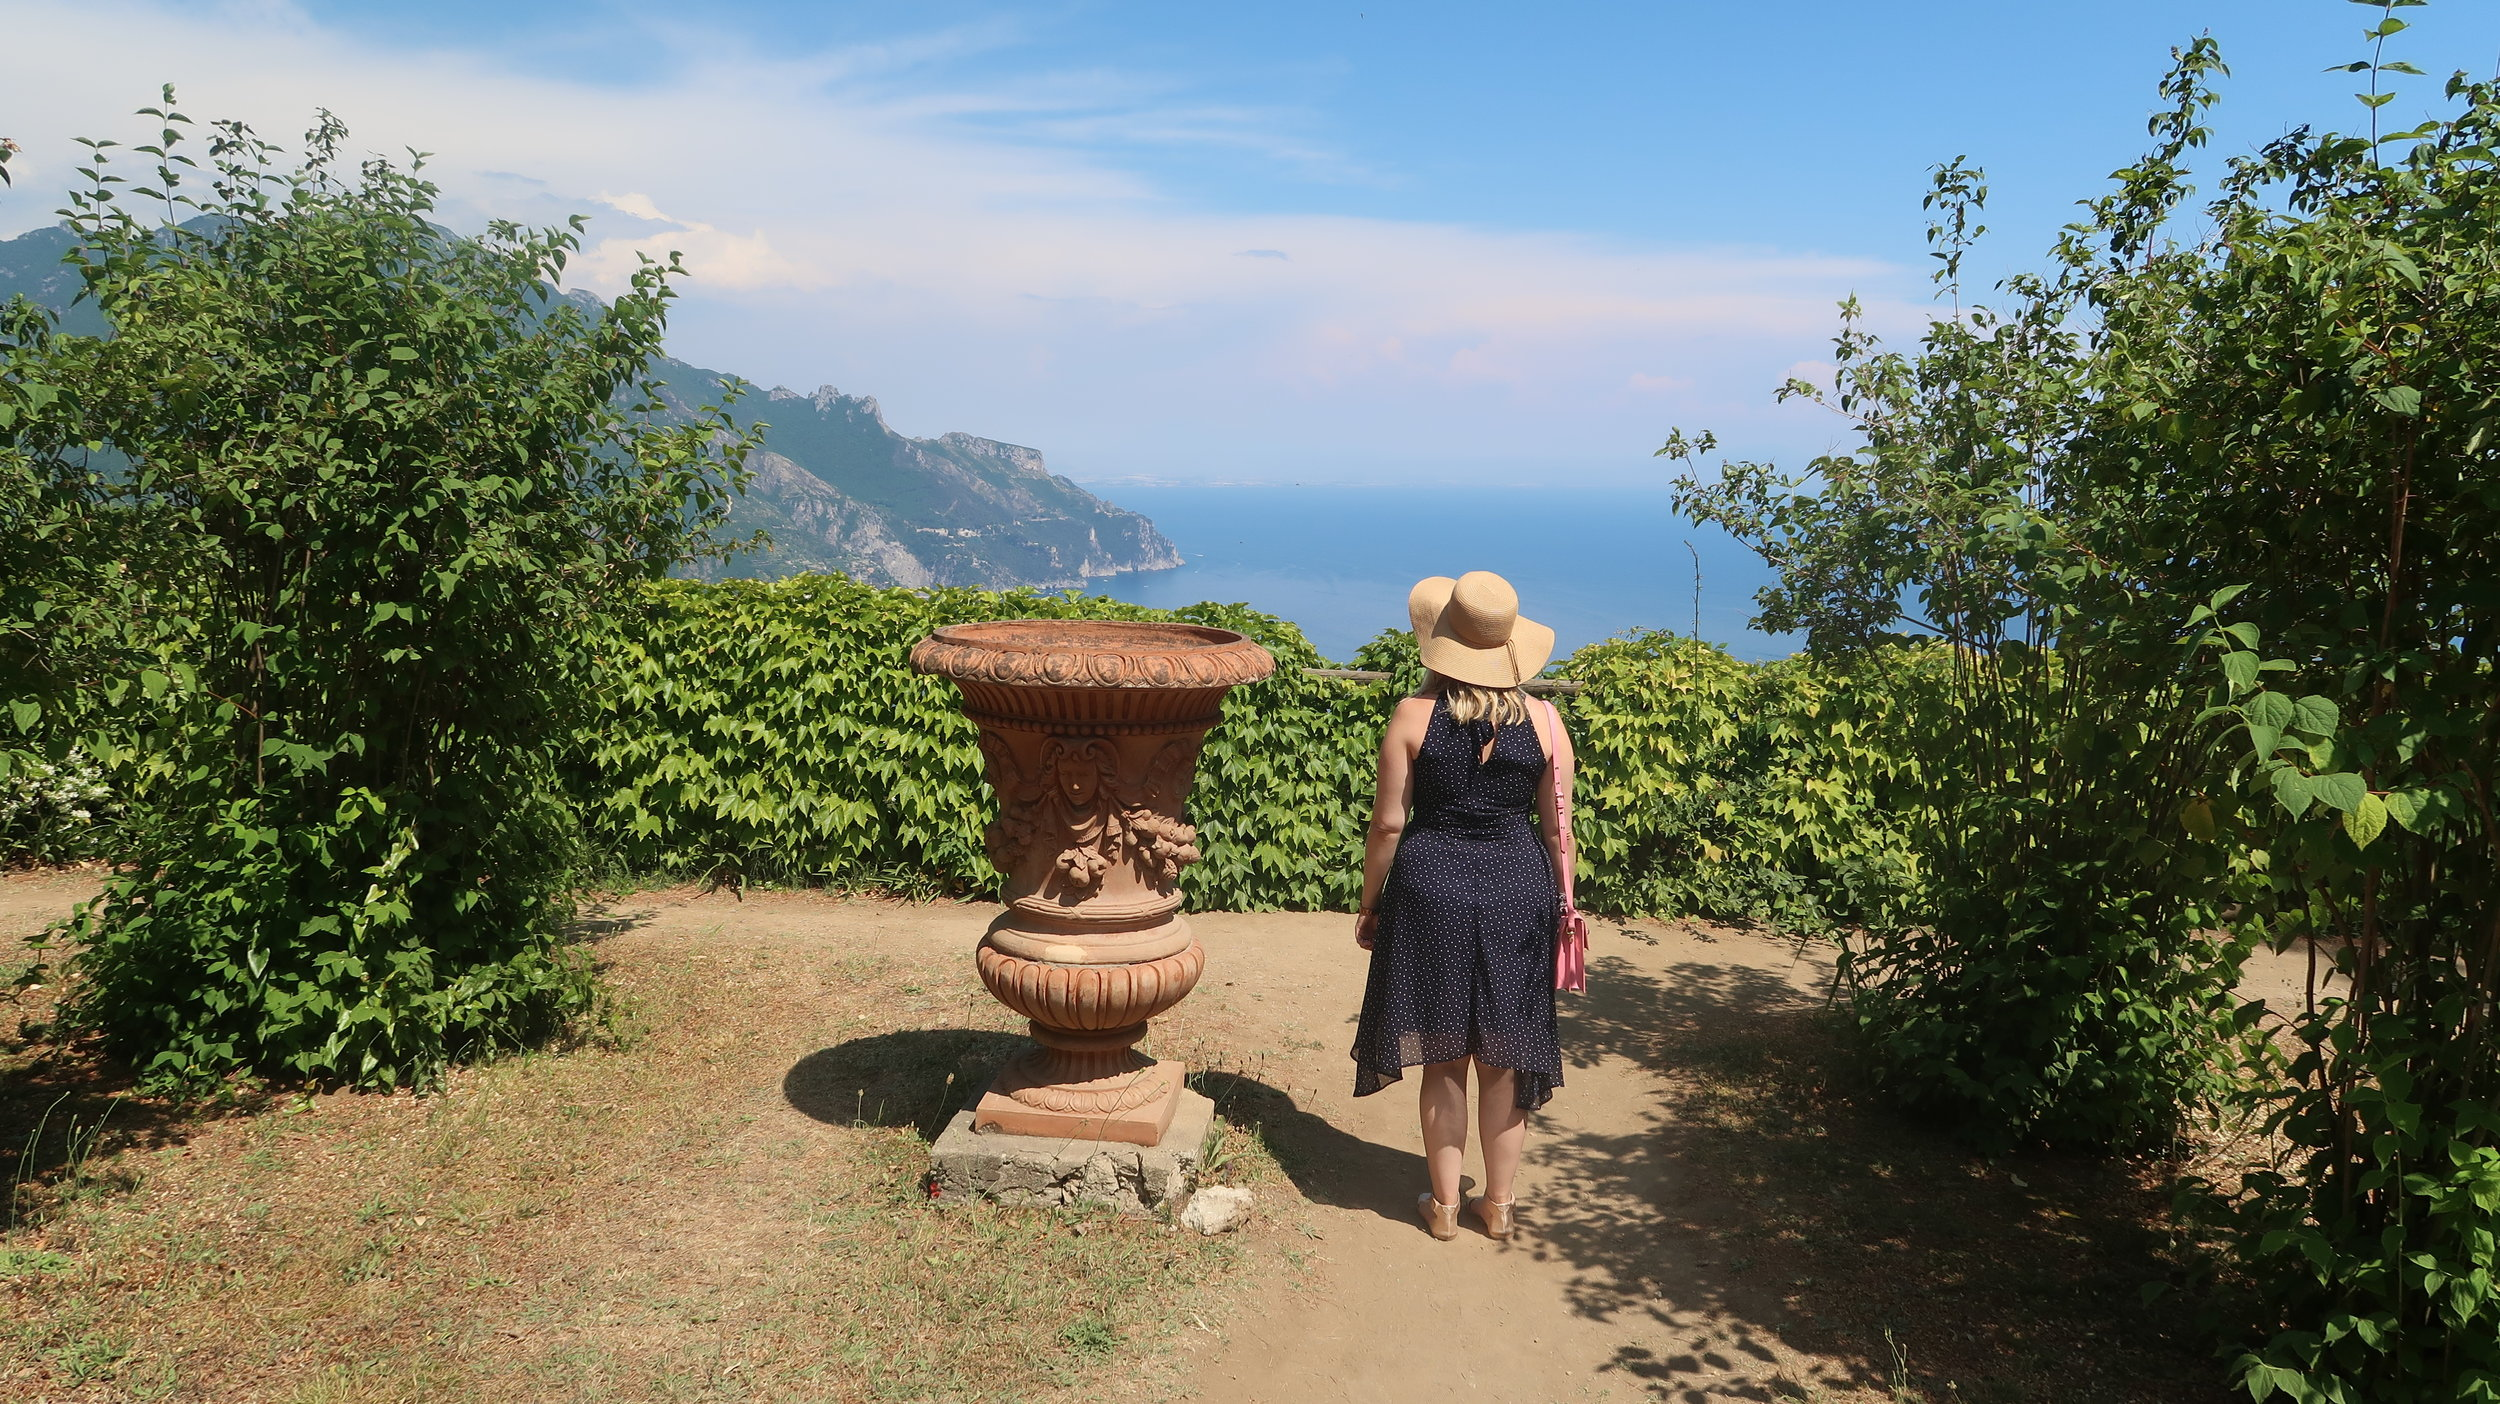 Appreciating the view at Villa Cimbrone in Ravello (Amalfi Coast, Italy).